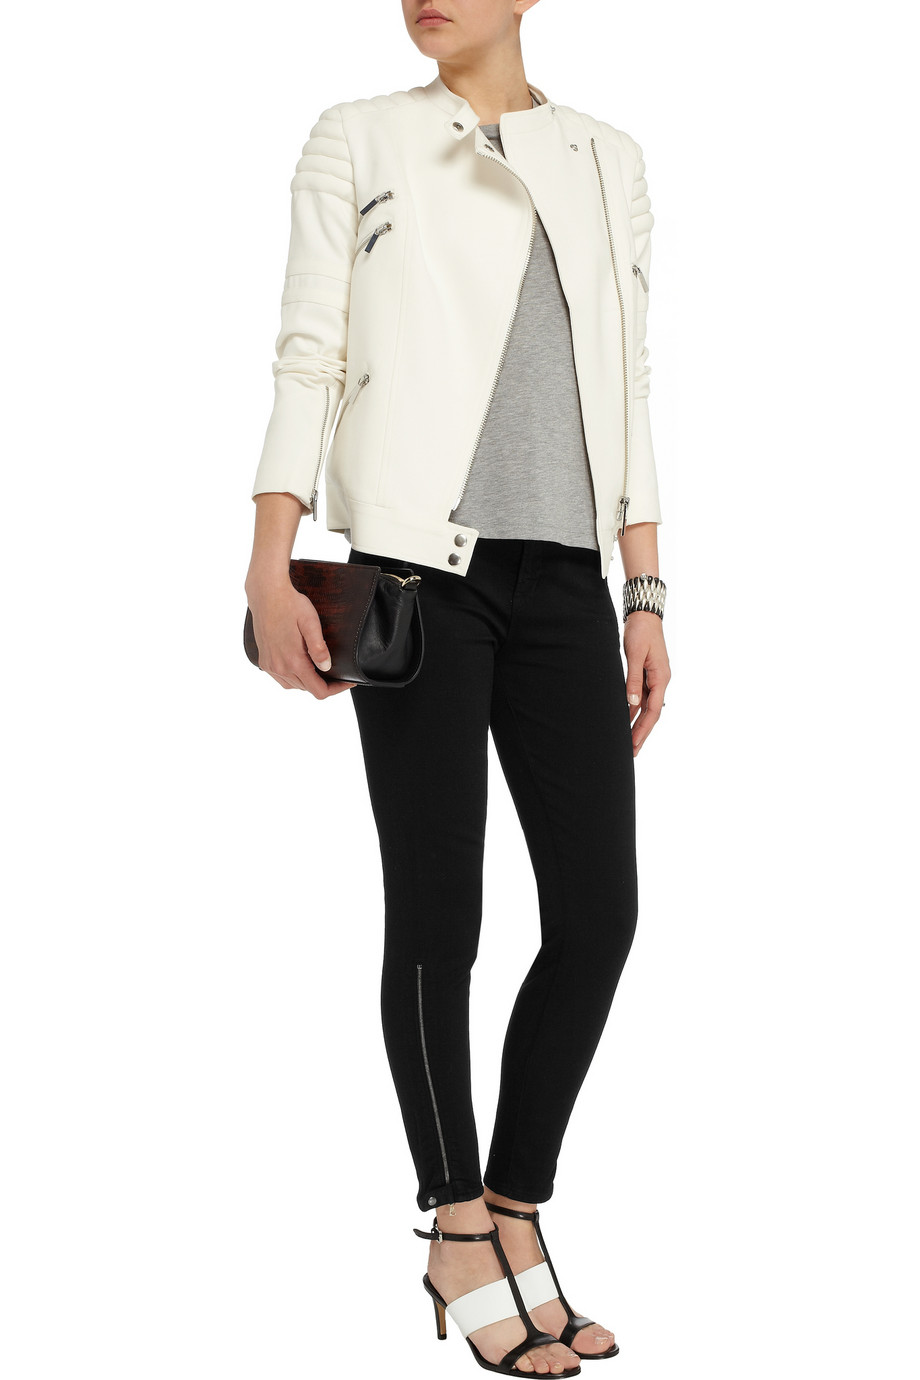 J Brand Carey mid-rise skinny jeans – 55% at THE OUTNET.COM